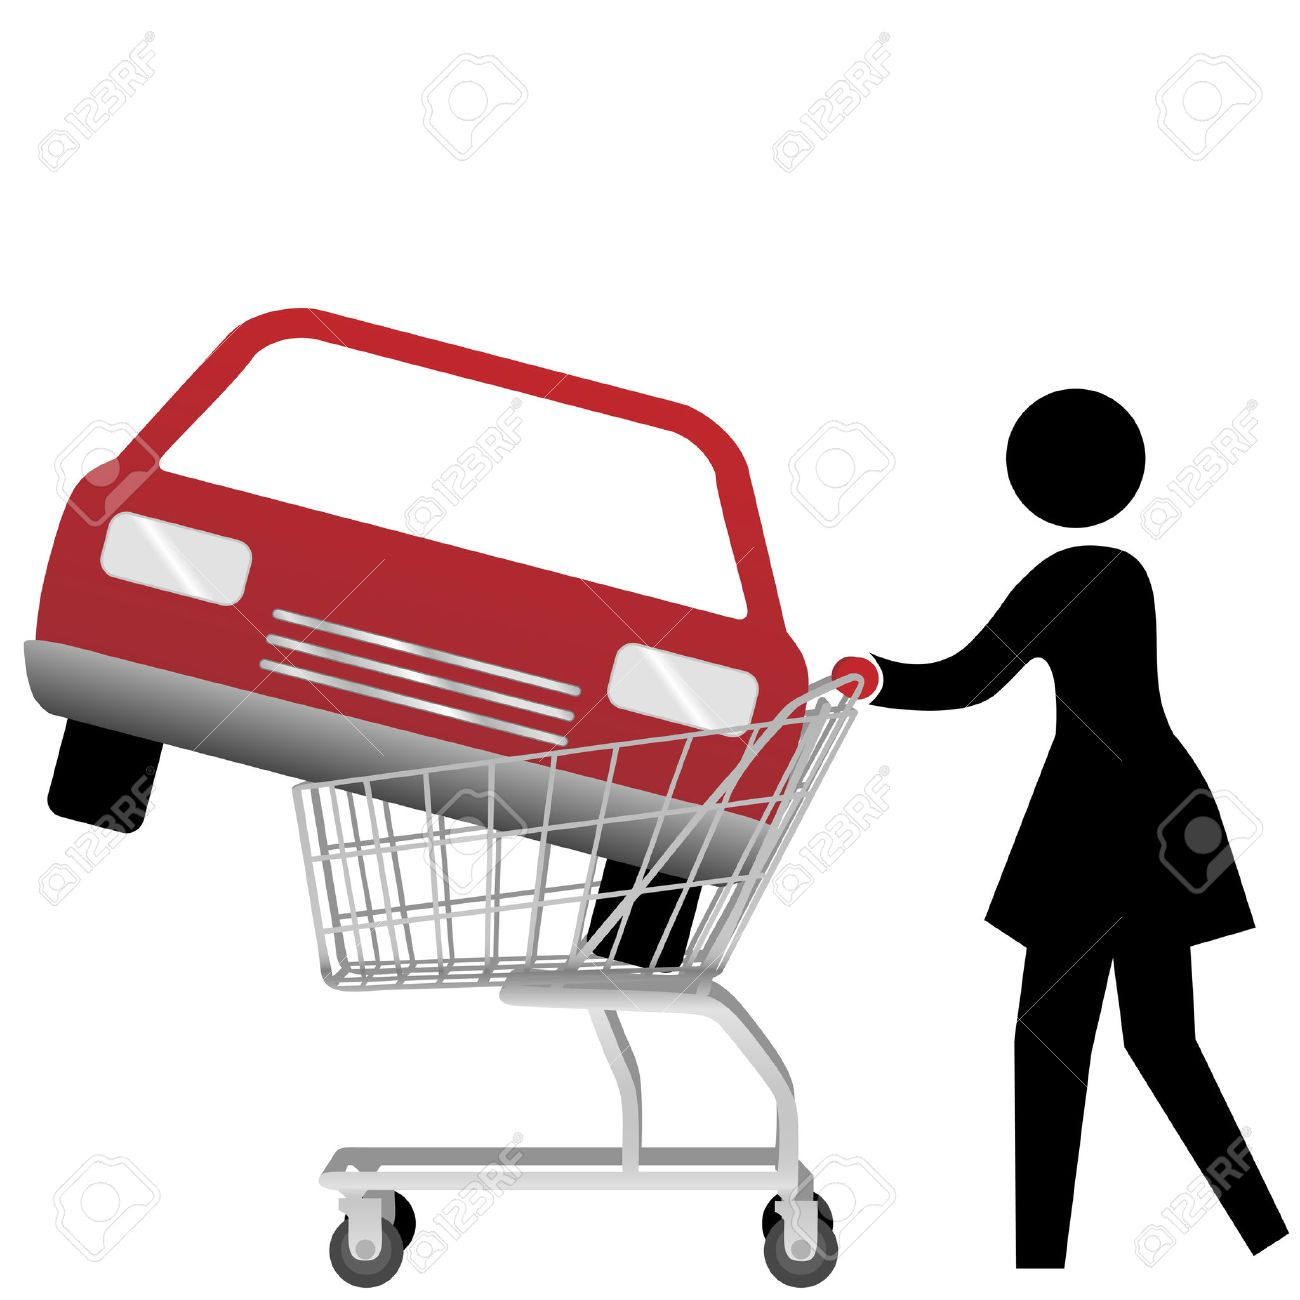 A woman car shopper buying a red auto inside a shopping cart. Stock Vector - 3546400